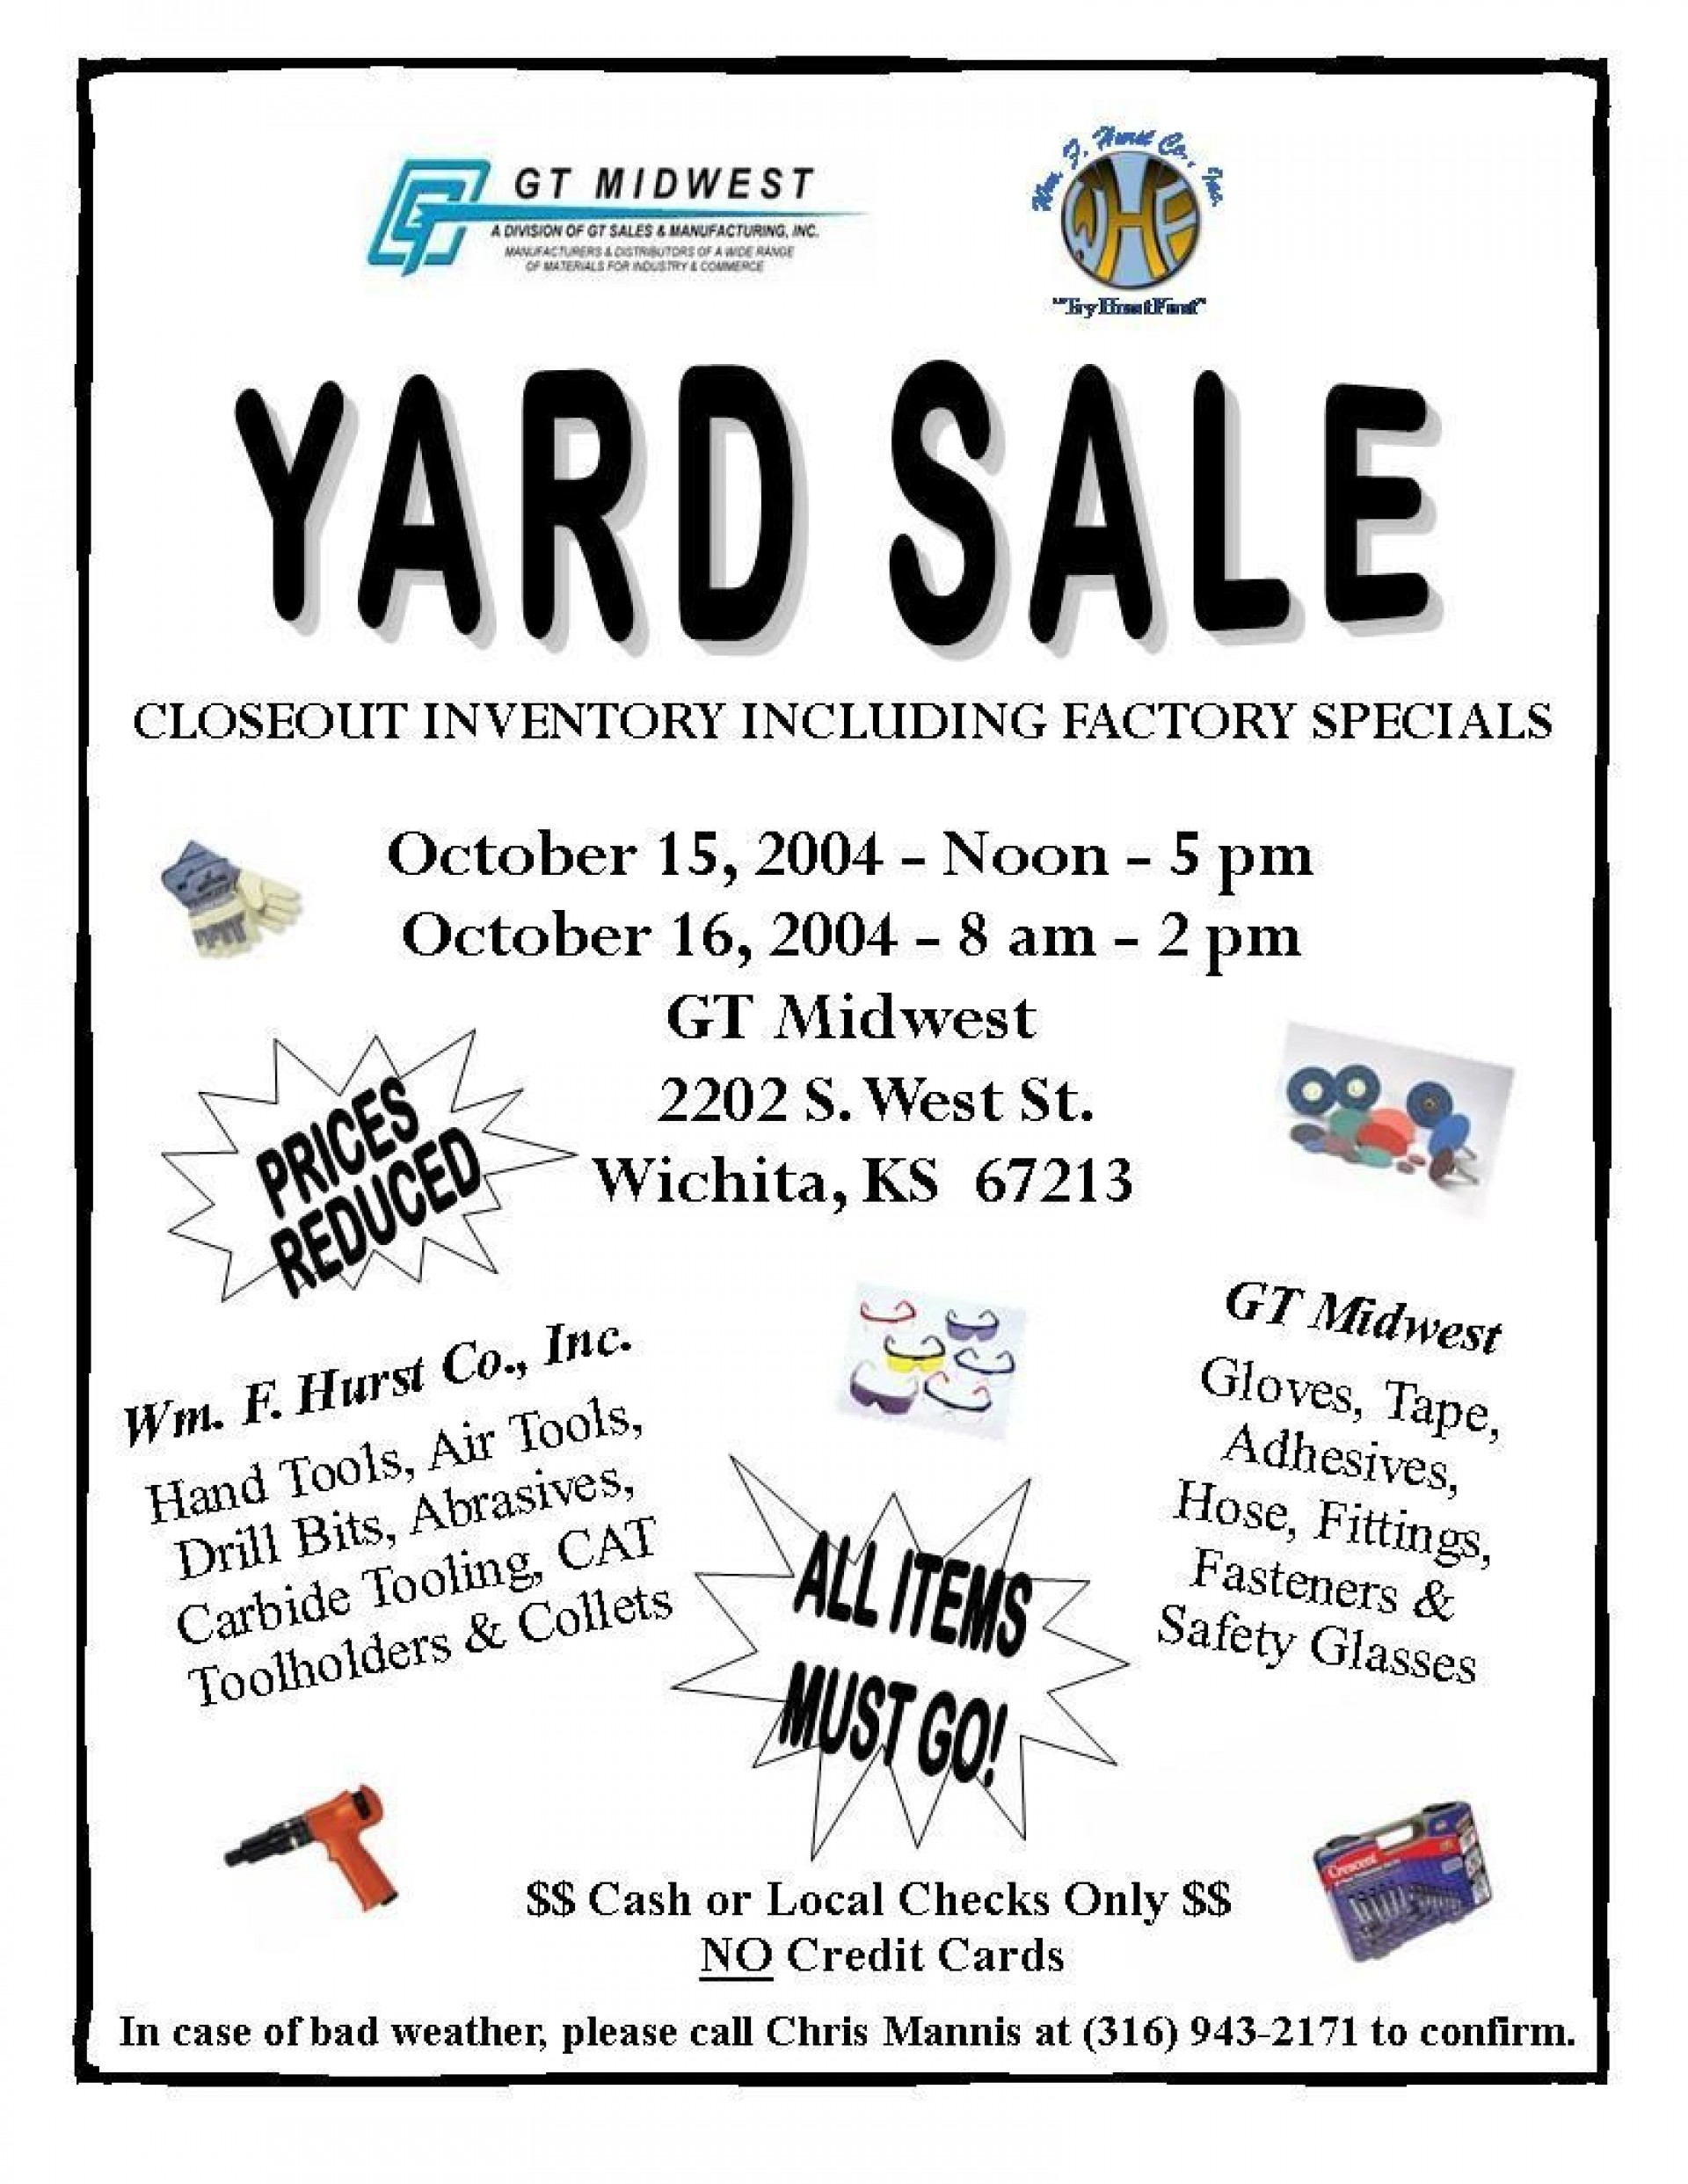 002 Top Yard Sale Flyer Template Sample  Free Garage Microsoft Word1920